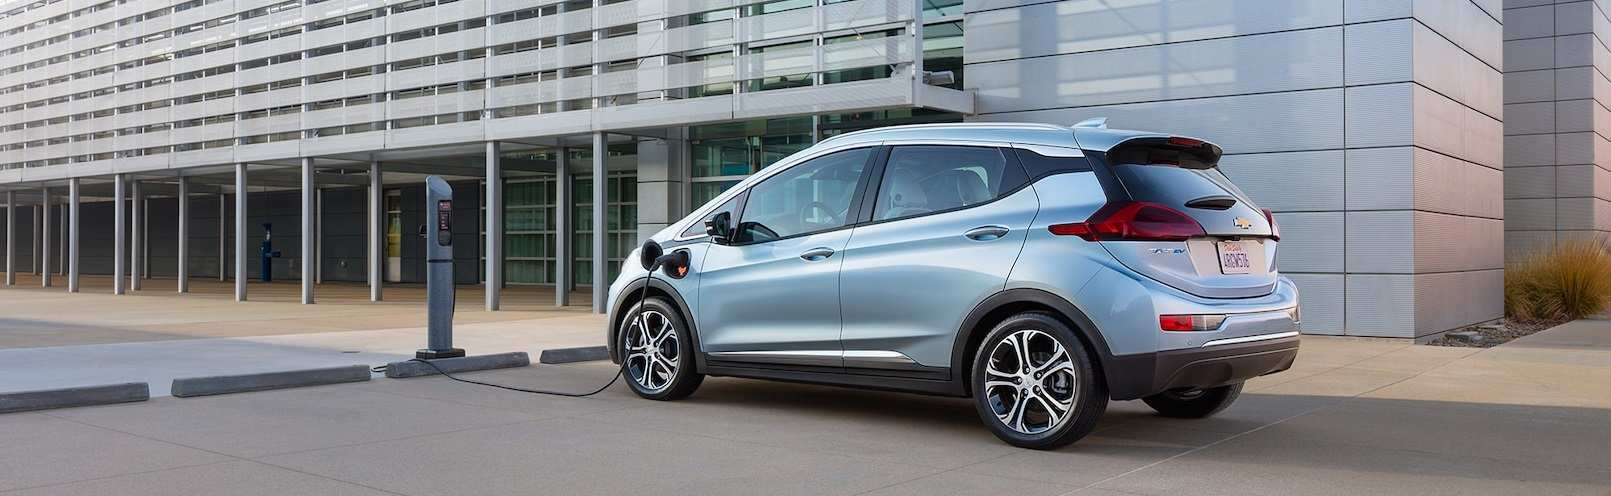 67 Great 2020 Chevrolet Bolt Ev Redesign and Concept with 2020 Chevrolet Bolt Ev